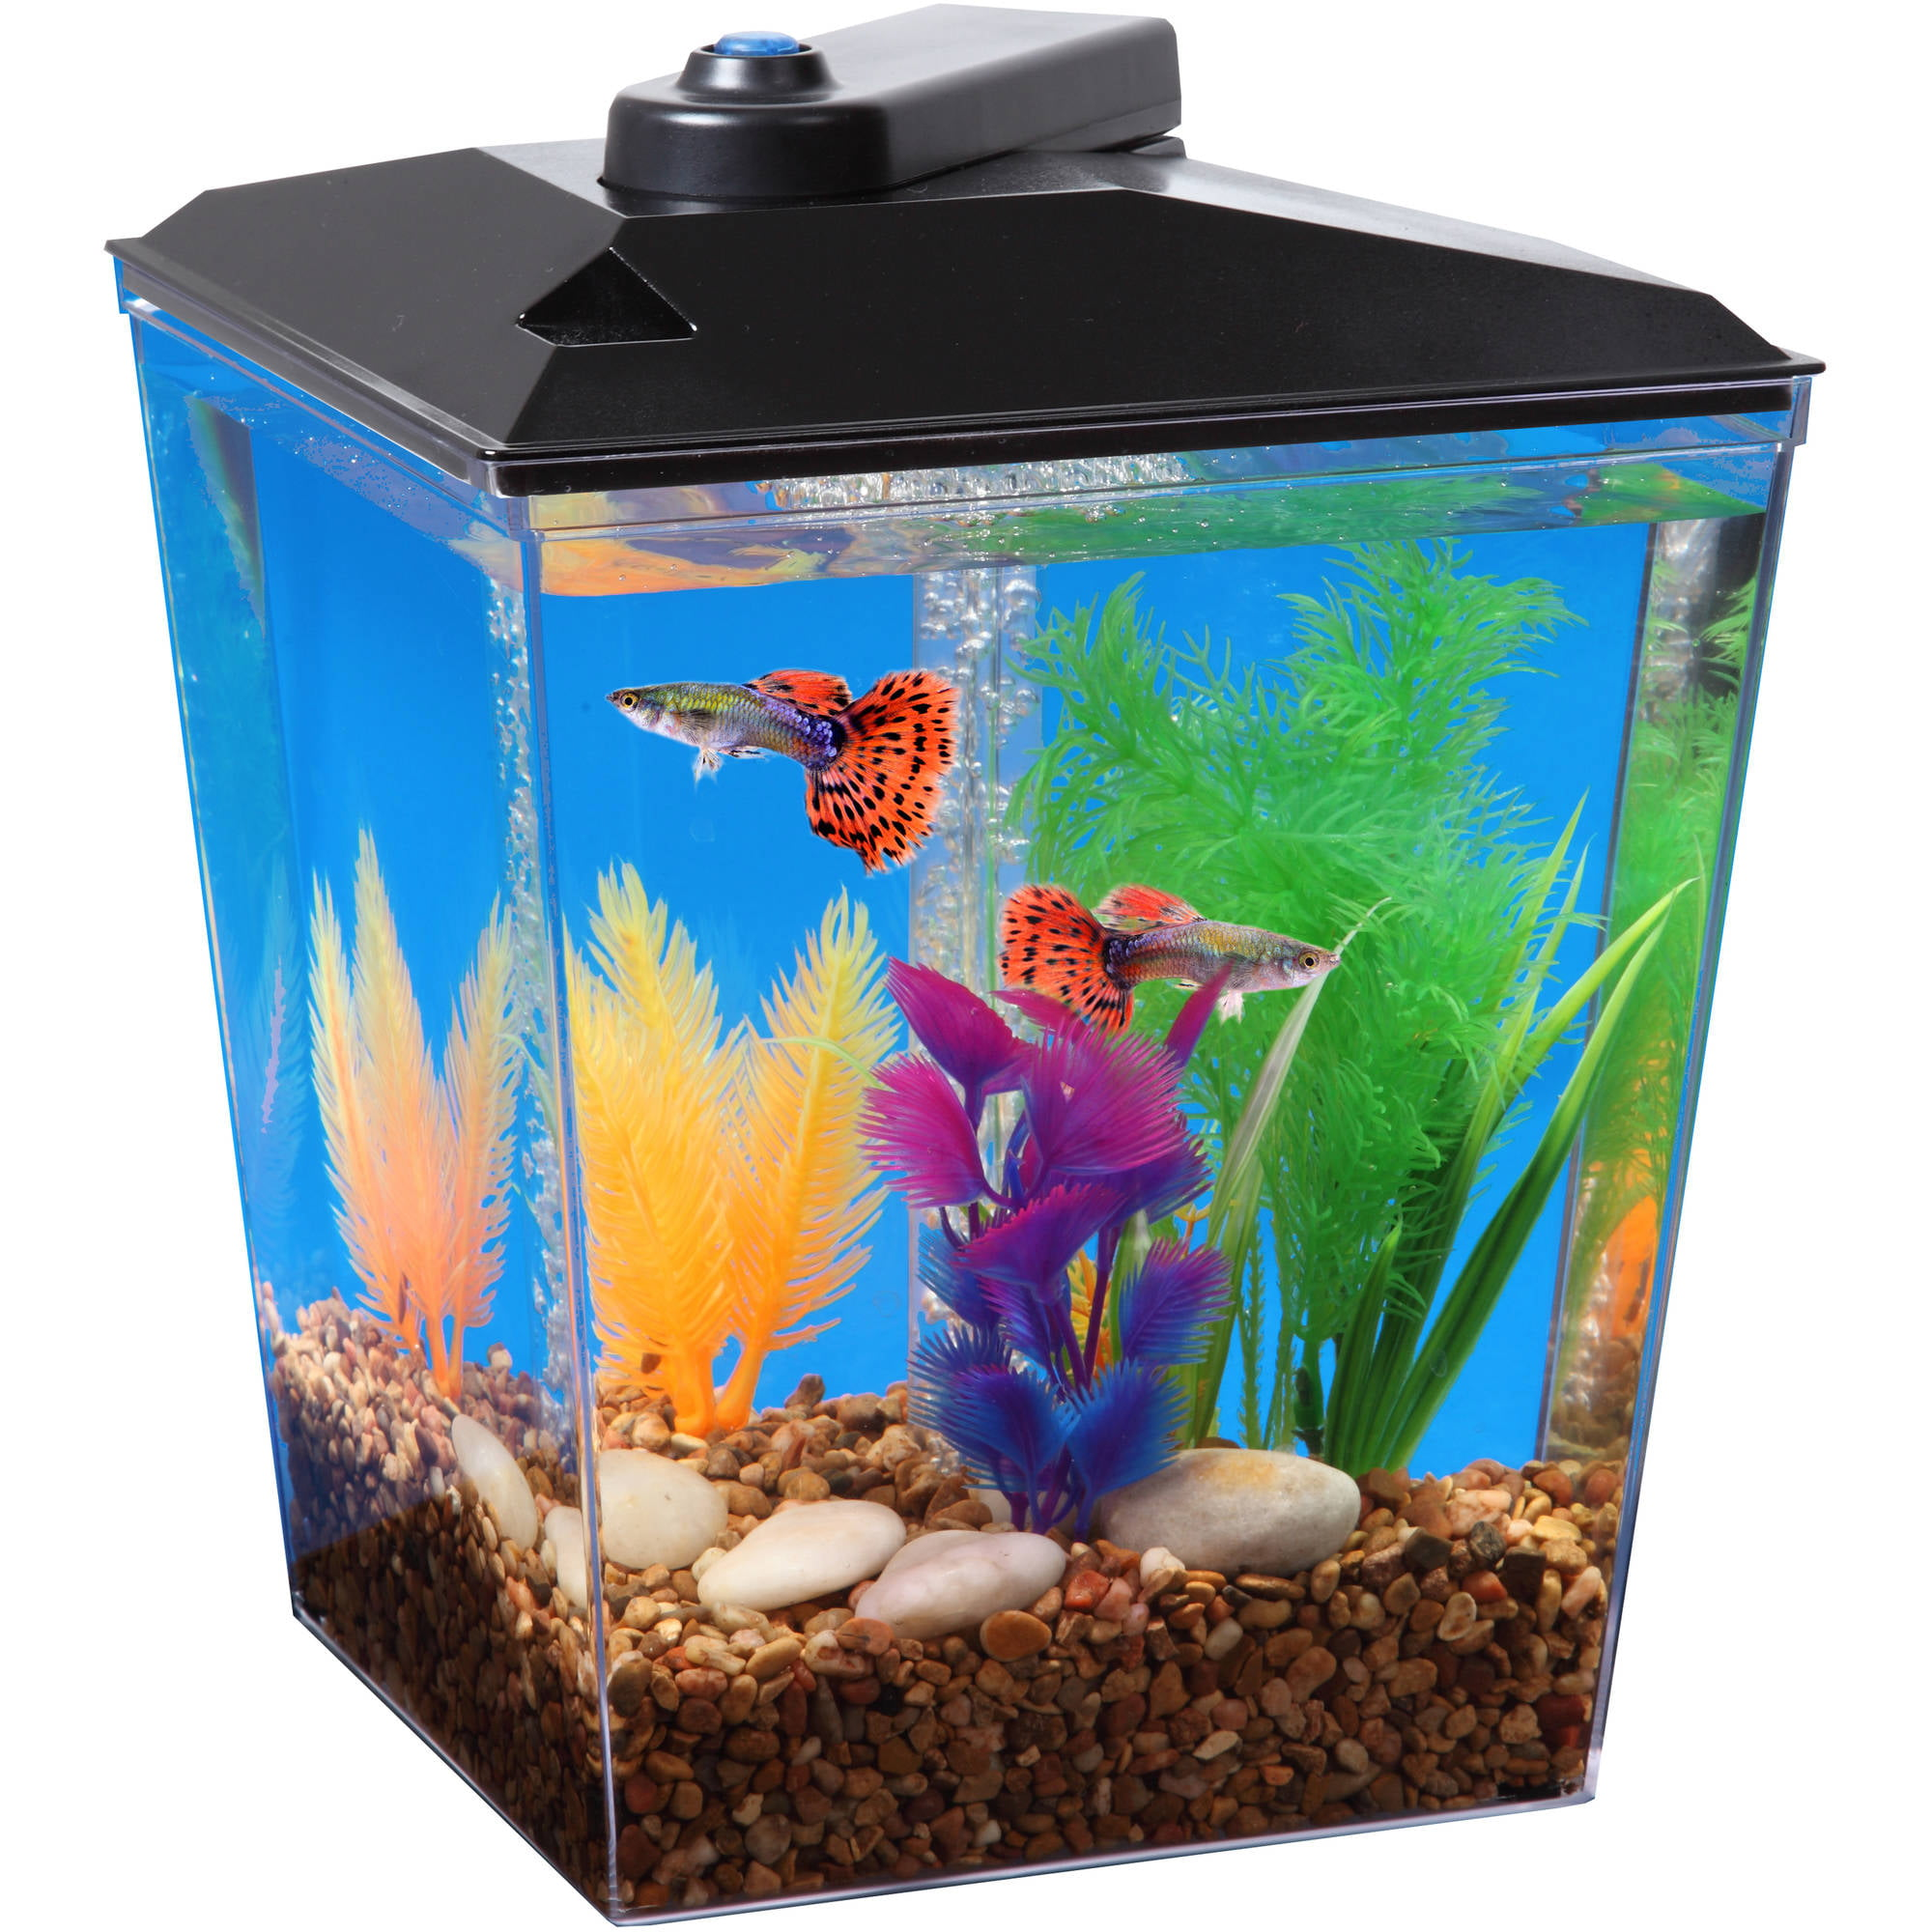 Aquarium kits pet supplies for 20 gallon fish tank kit